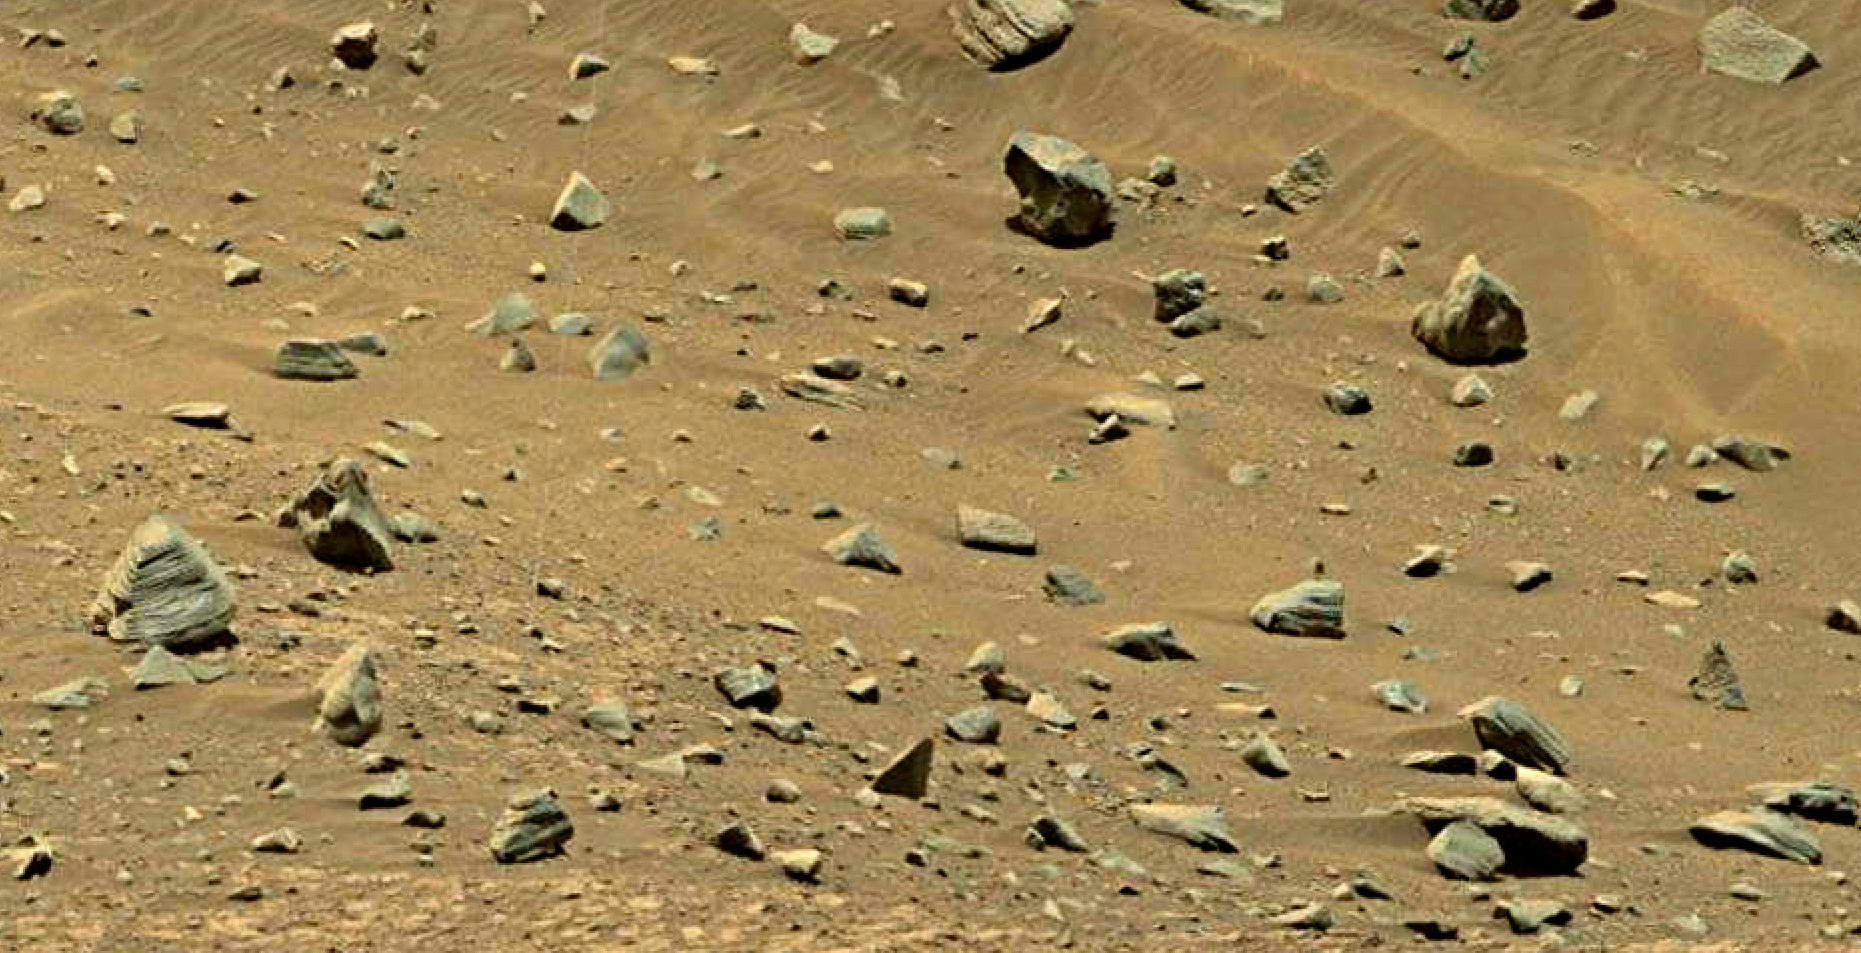 mars sol 1399 anomaly artifacts 5a was life on mars